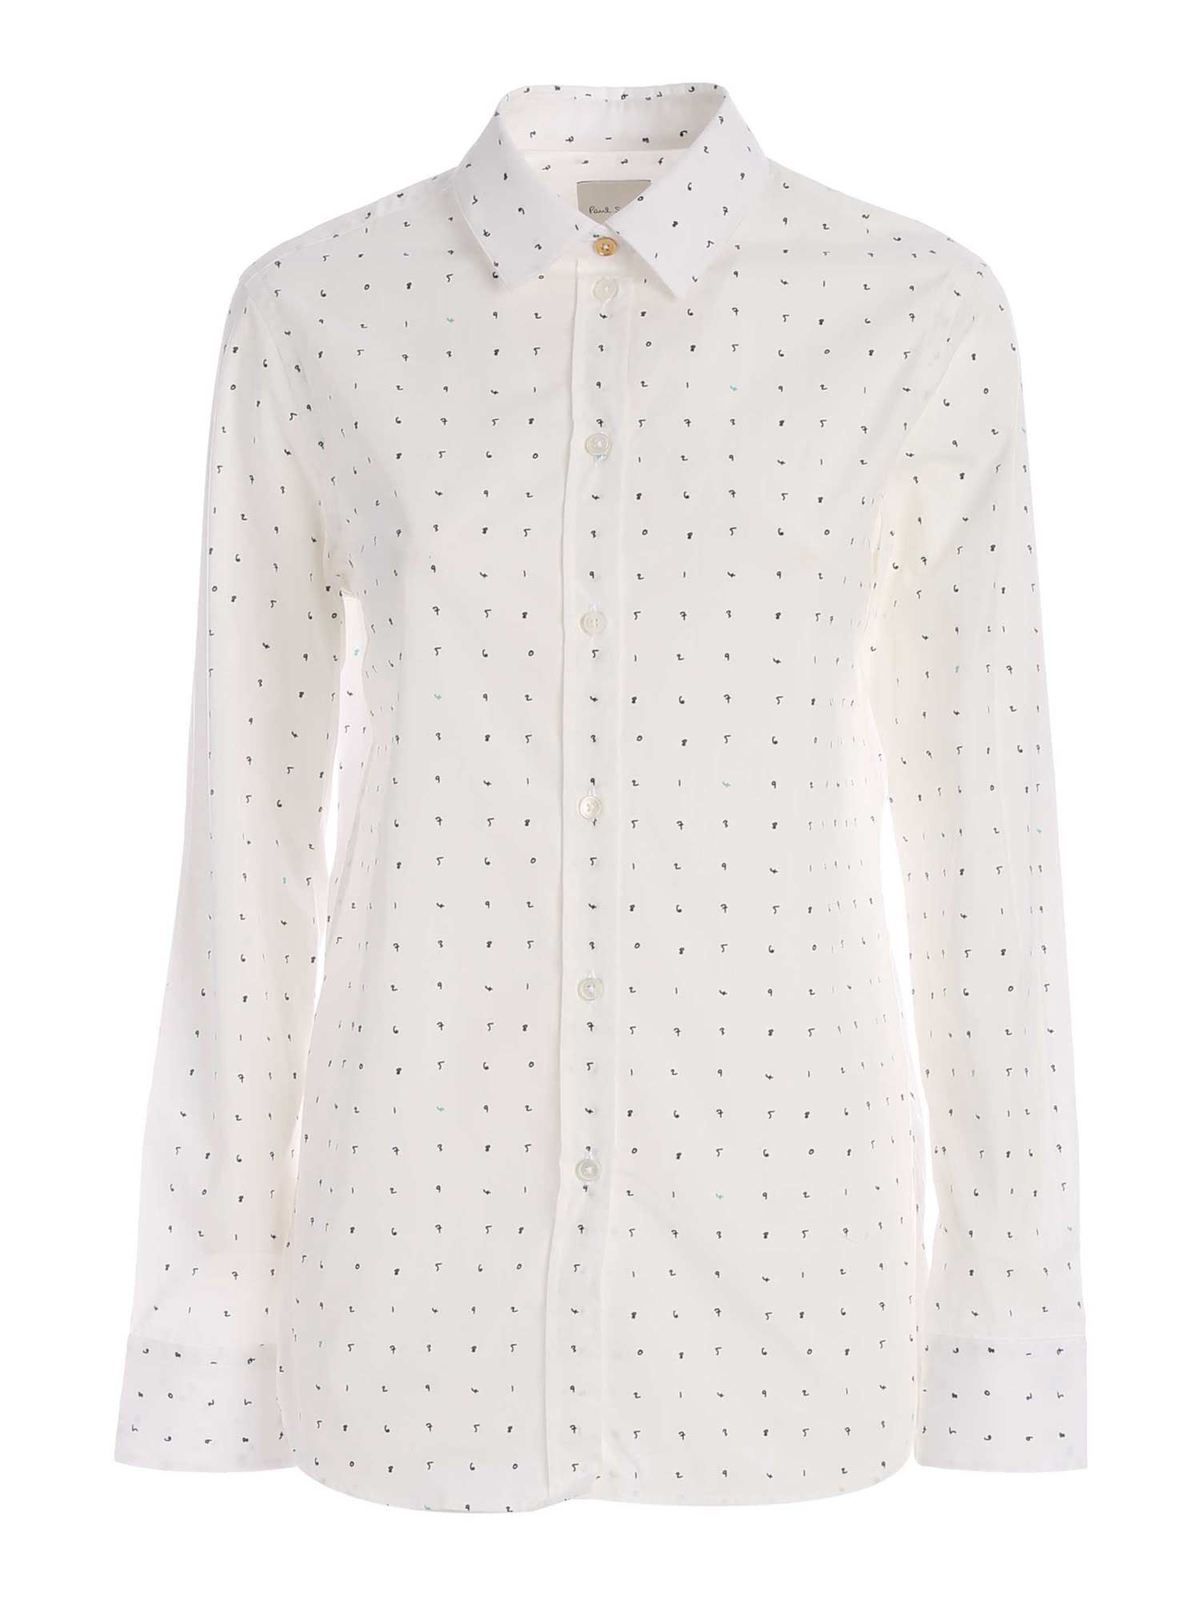 Paul Smith ALL-OVER NUMBER PRINT SHIRT IN WHITE